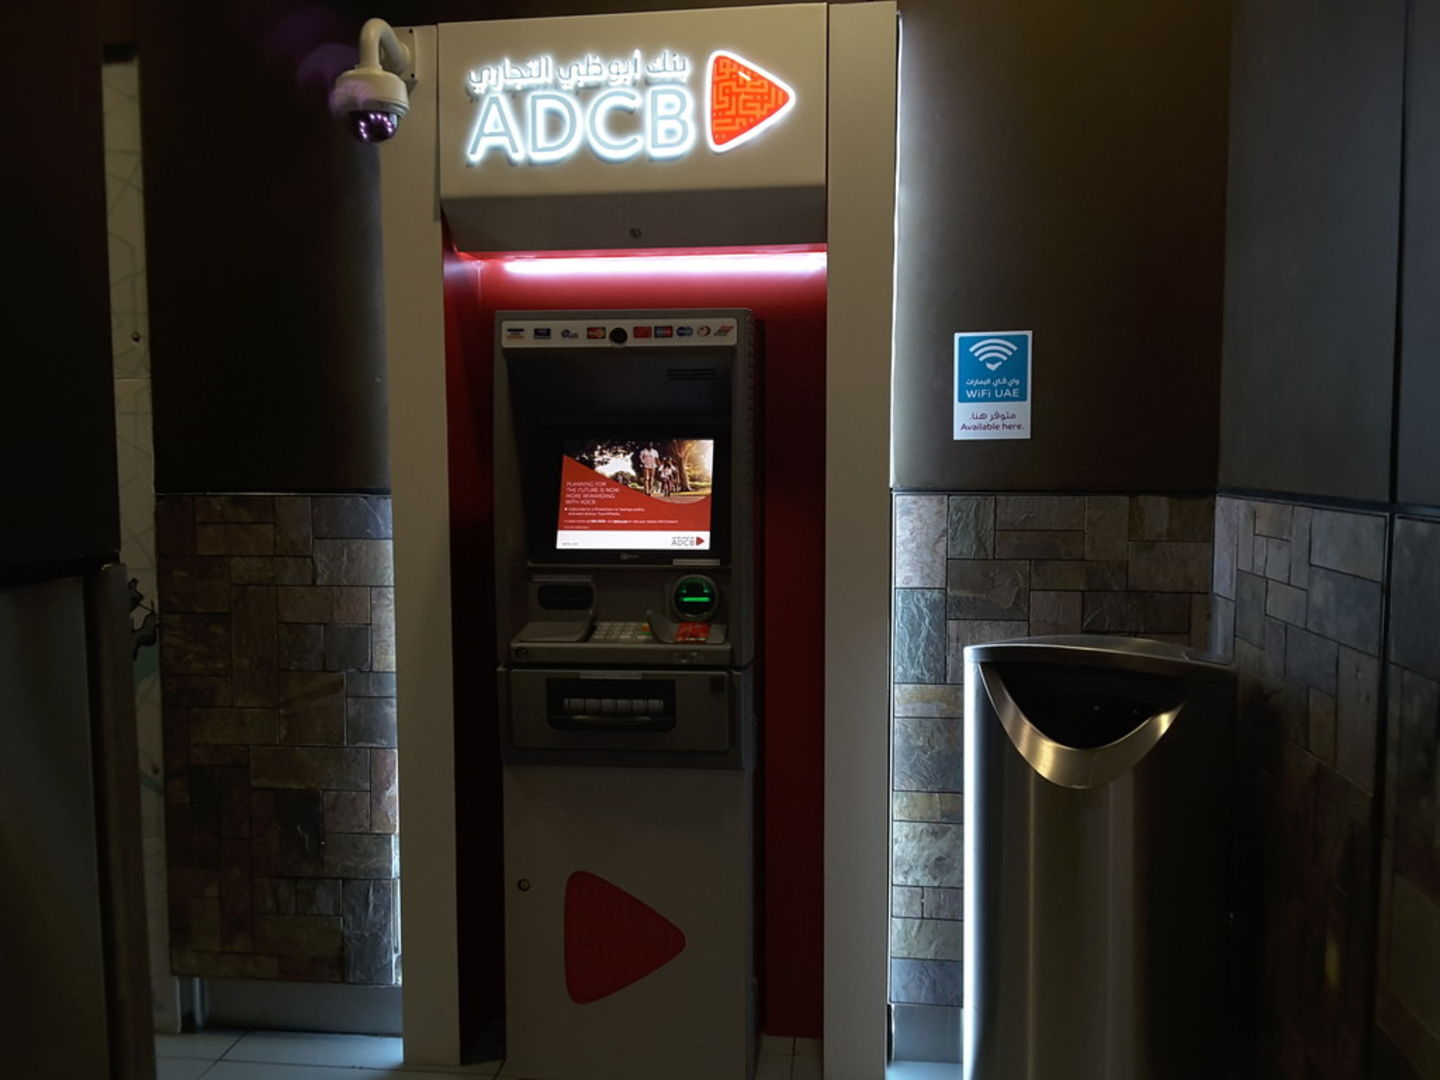 HiDubai-business-abu-dhabi-commercial-bank-adcb-atm-finance-legal-banks-atms-al-rigga-dubai